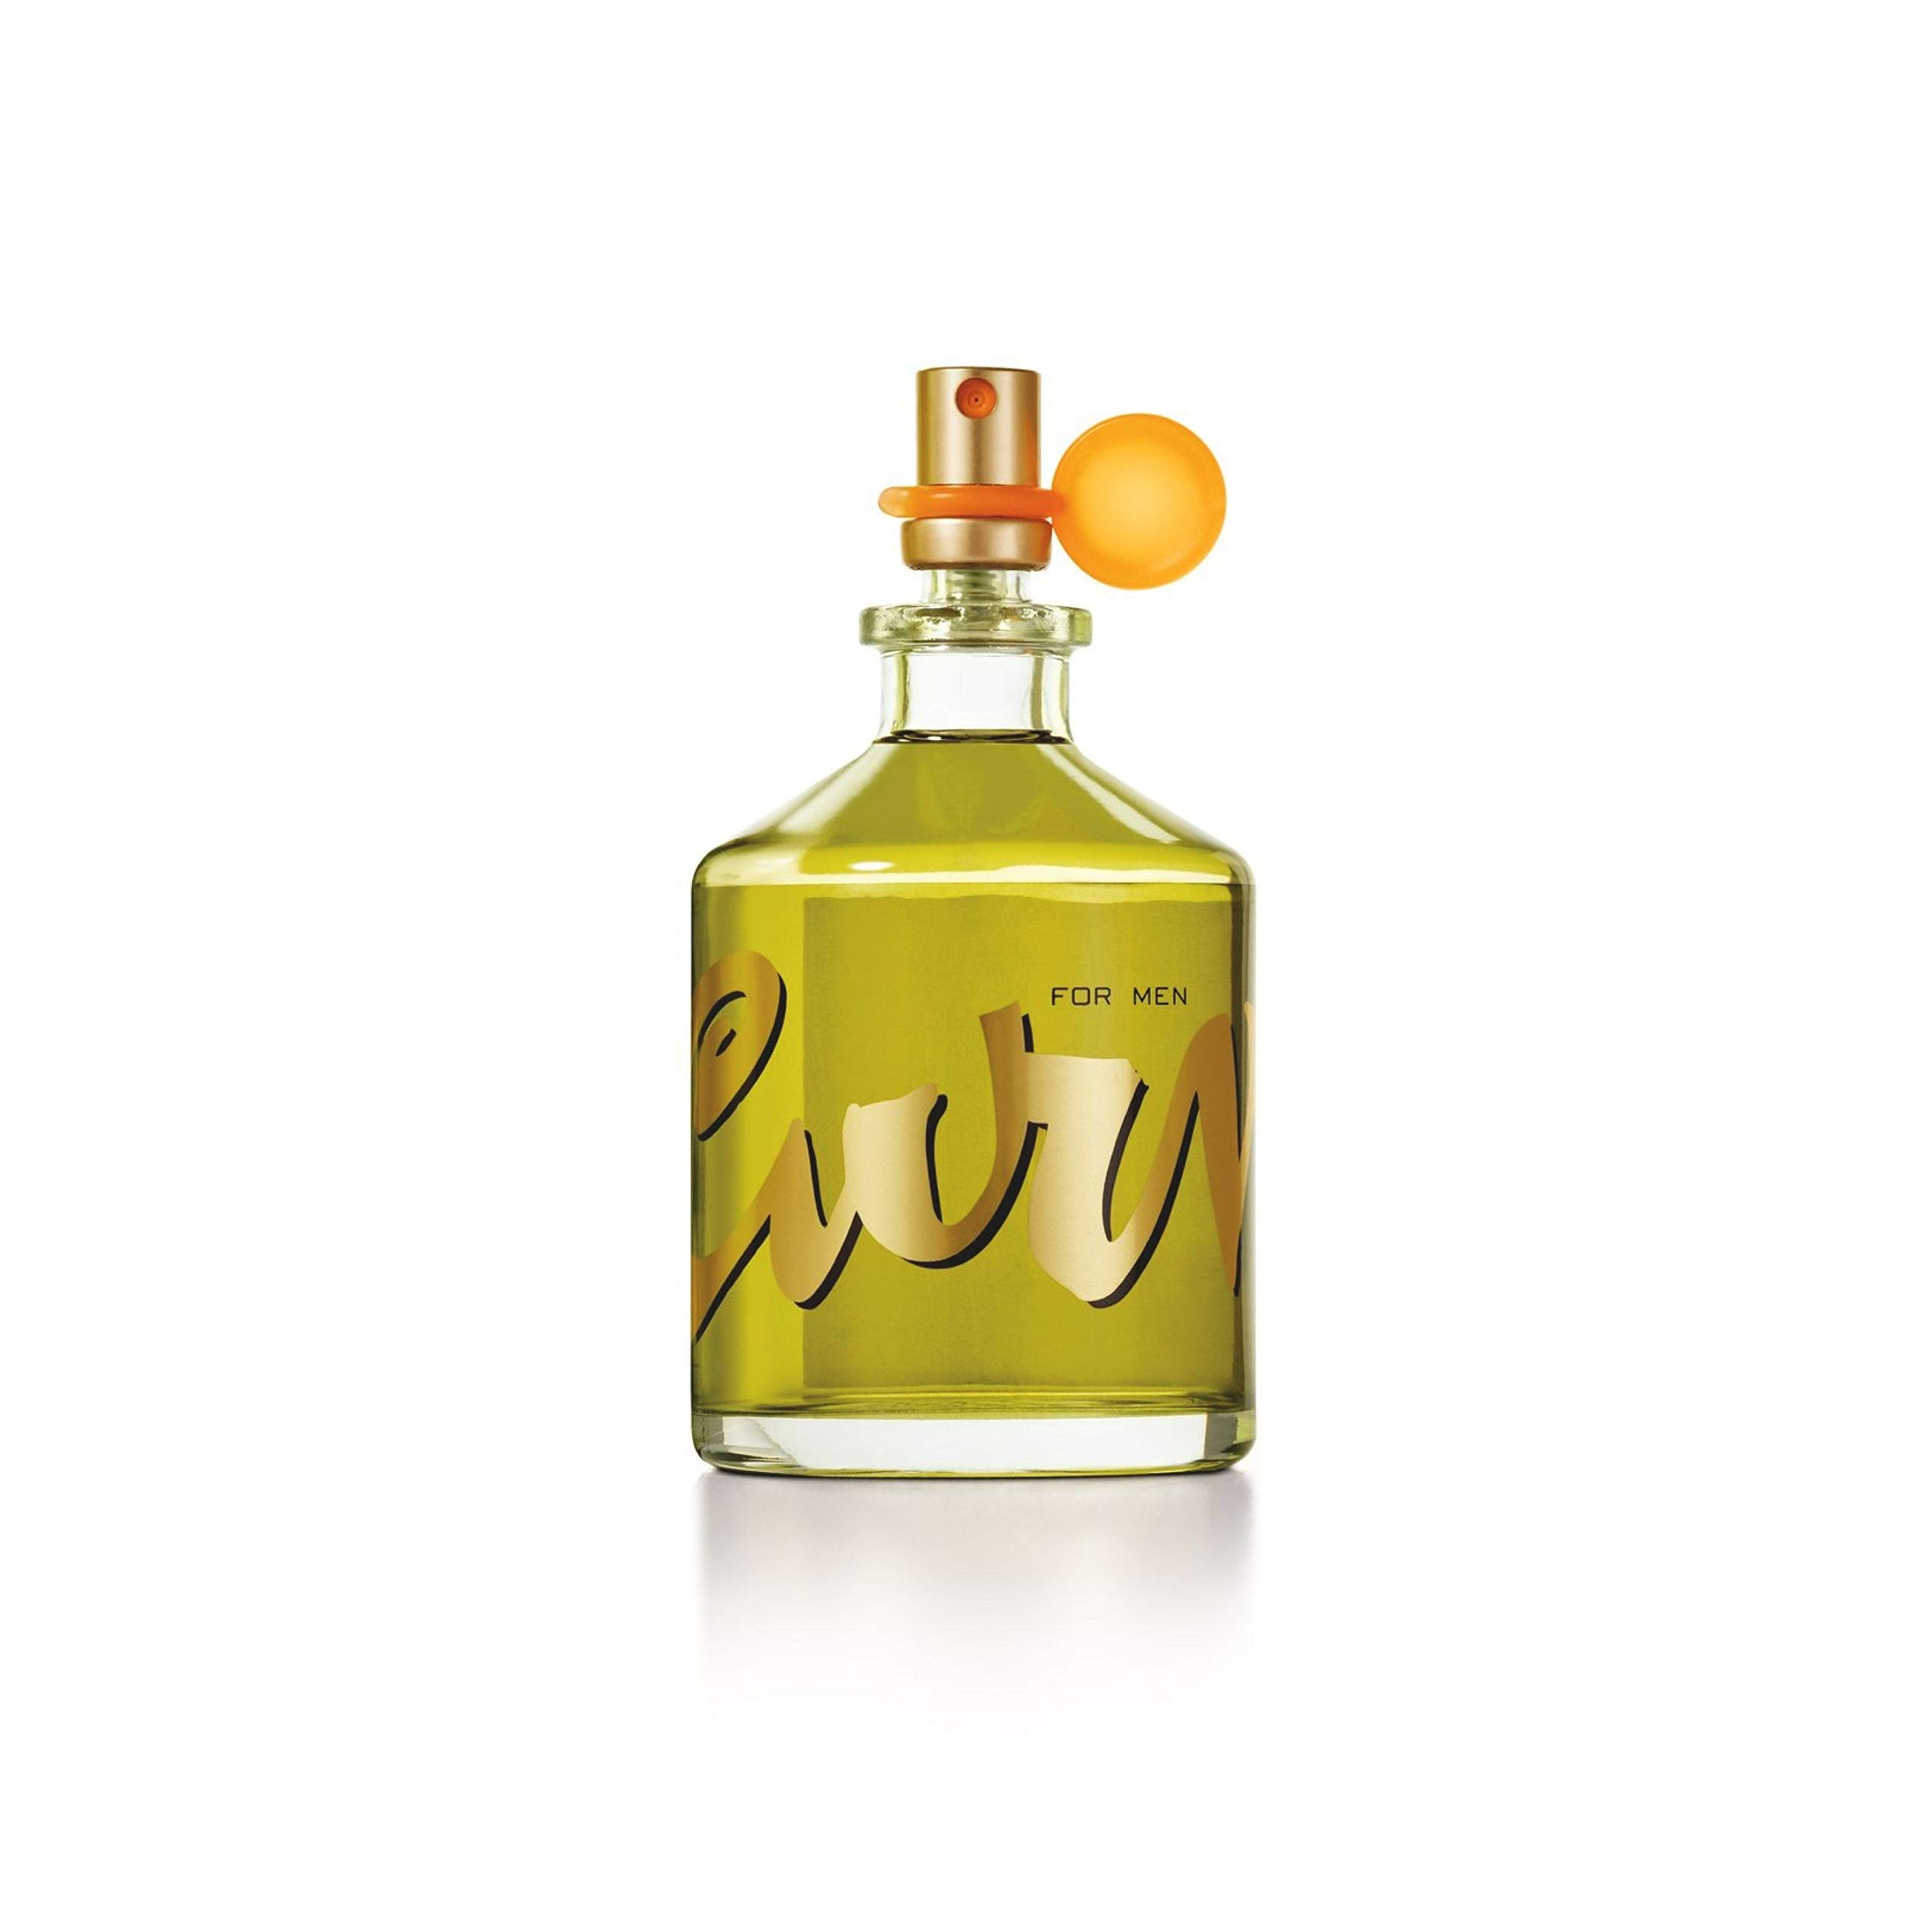 Curve for Men Cologne Spray, Spicy Woody Magnetic Scent for Day or Night, 4.2 Ounce